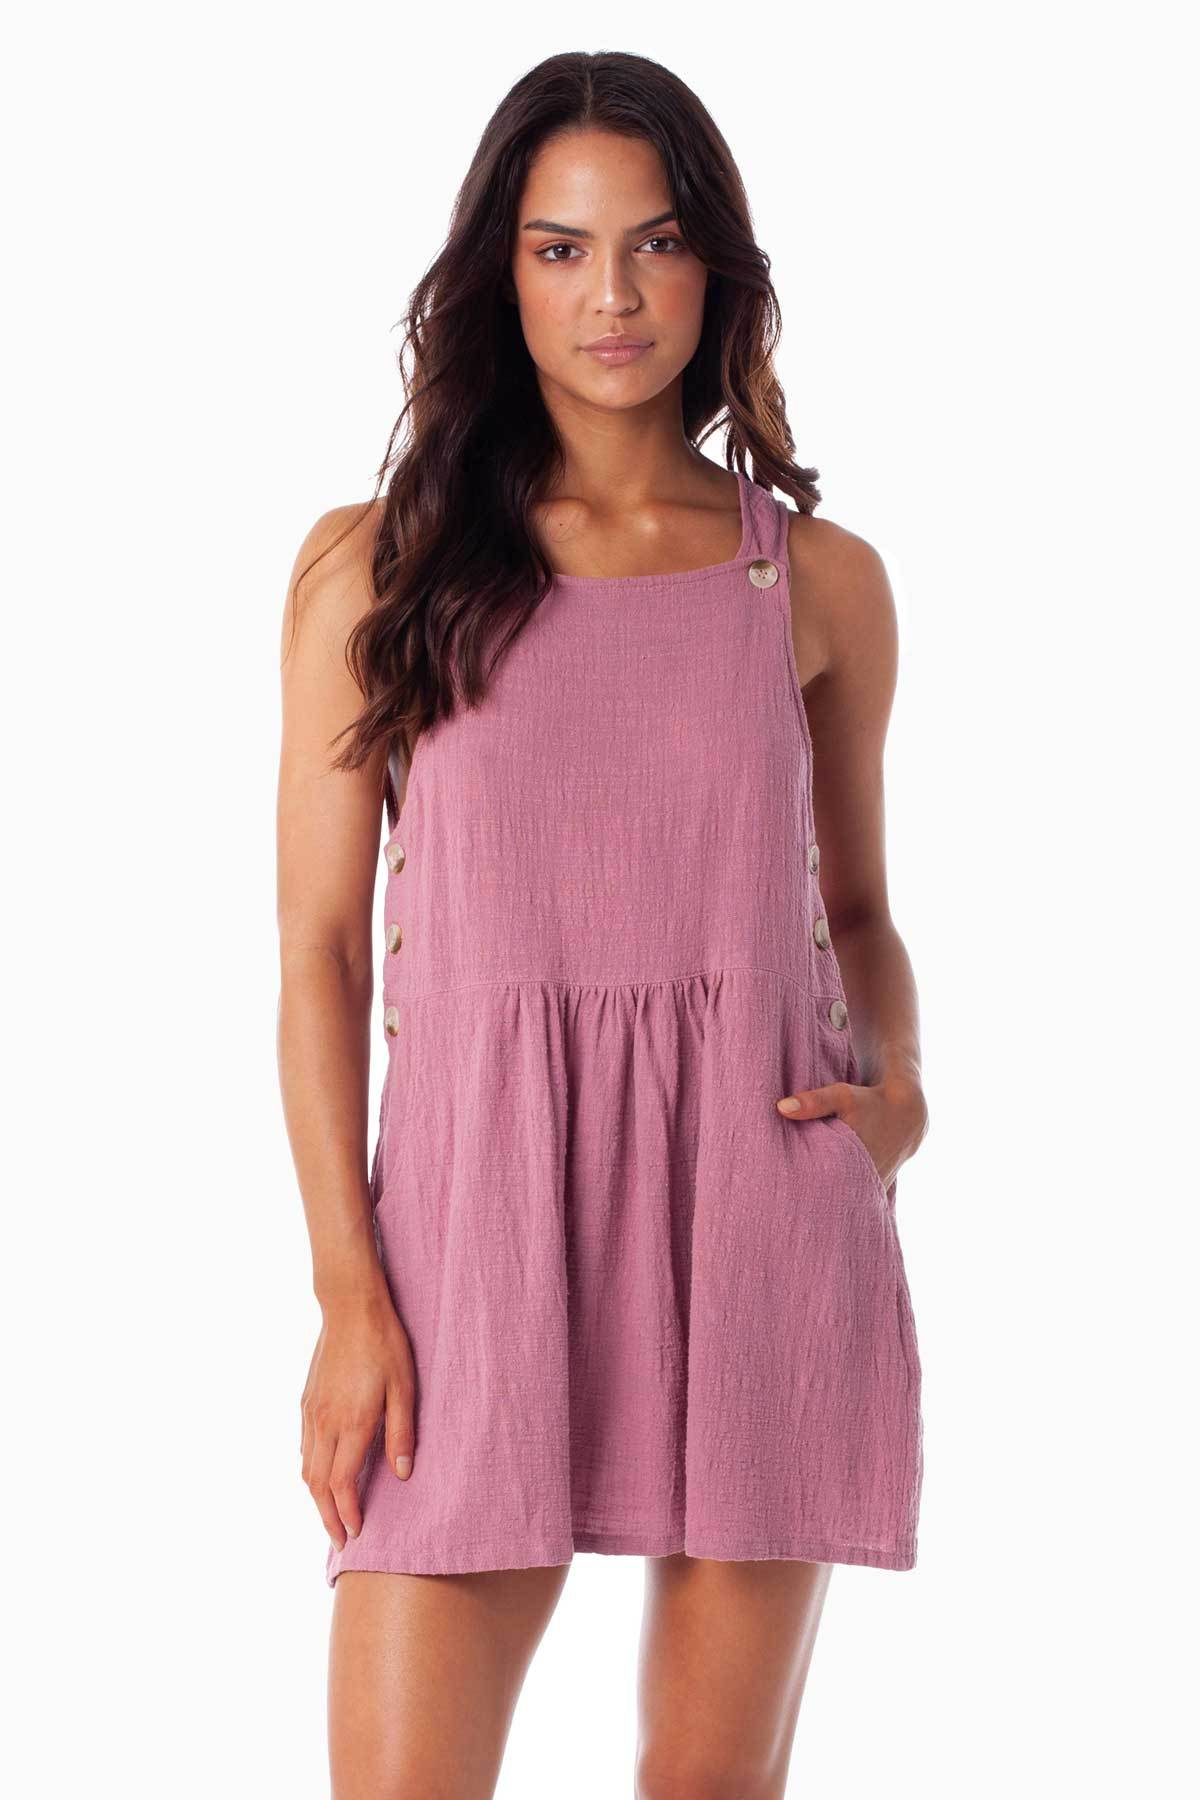 Sundown Dress - Mauve